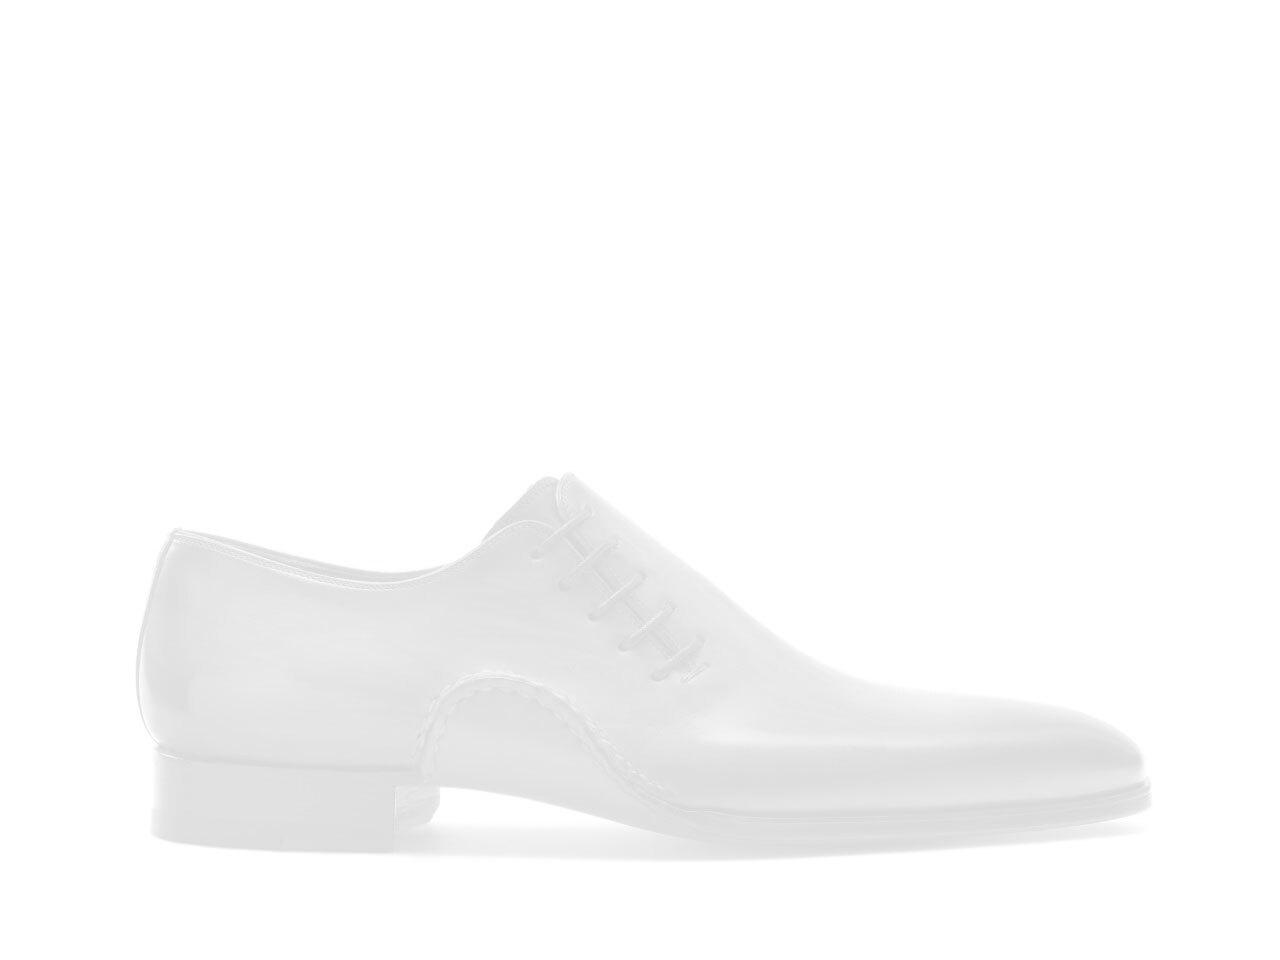 Sole of the Magnanni Warwick Grey Men's Sneakers